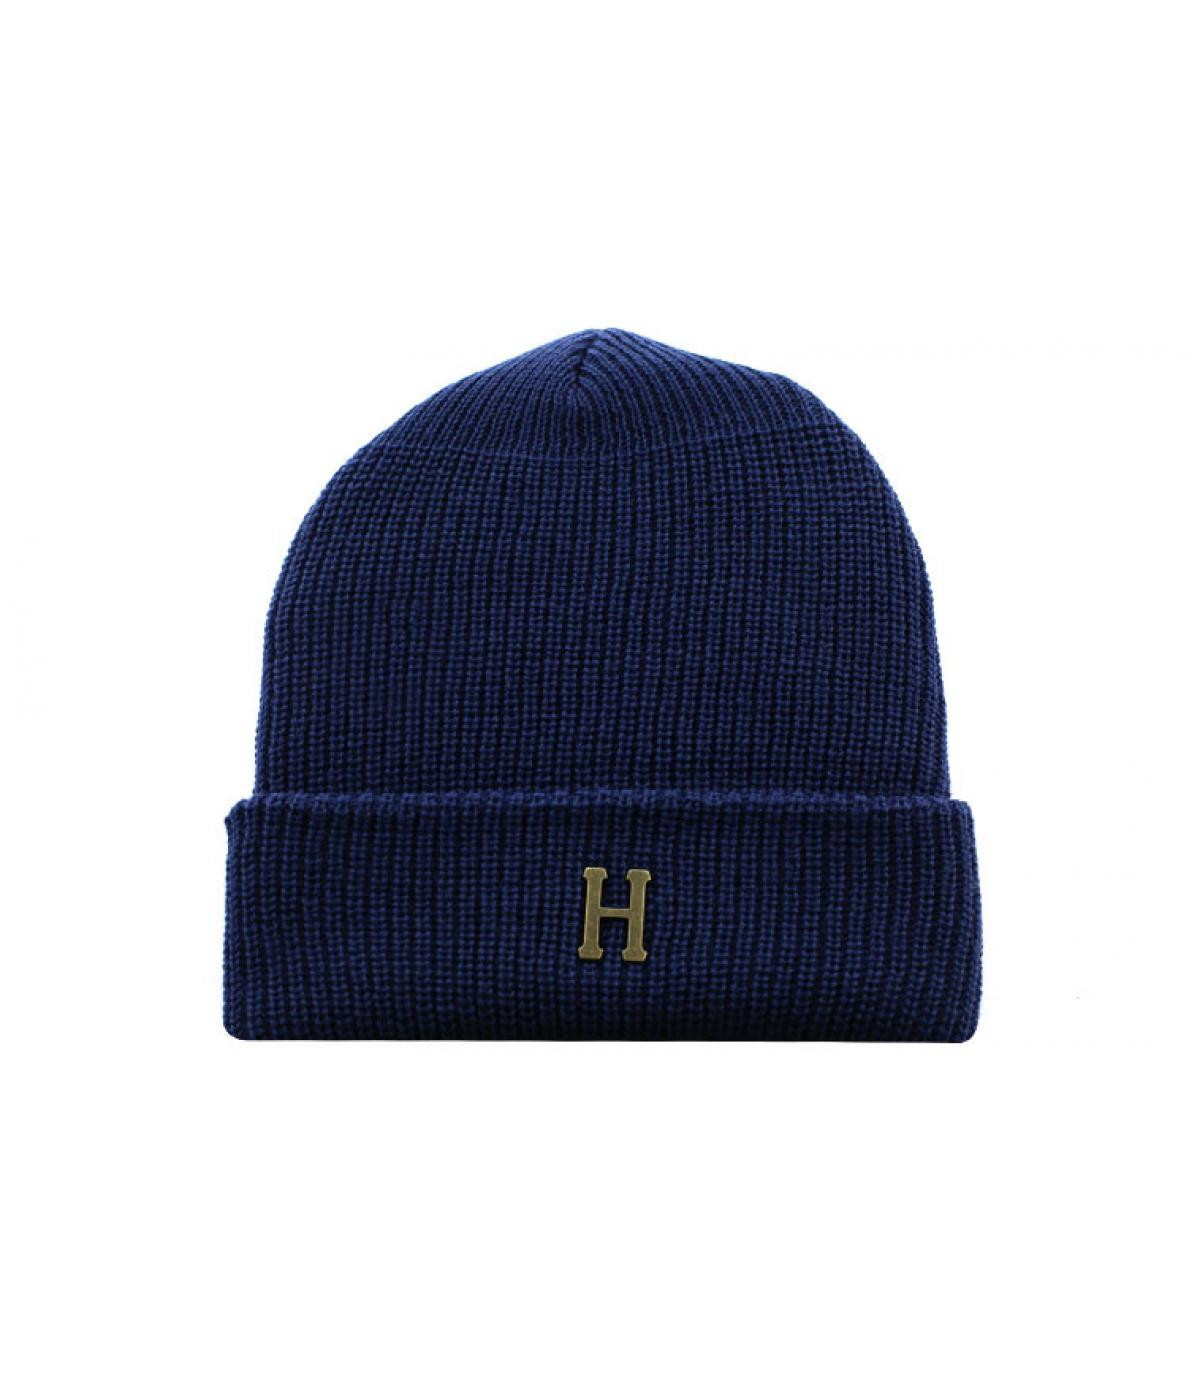 Détails Brass H Military Beanie navy - image 2